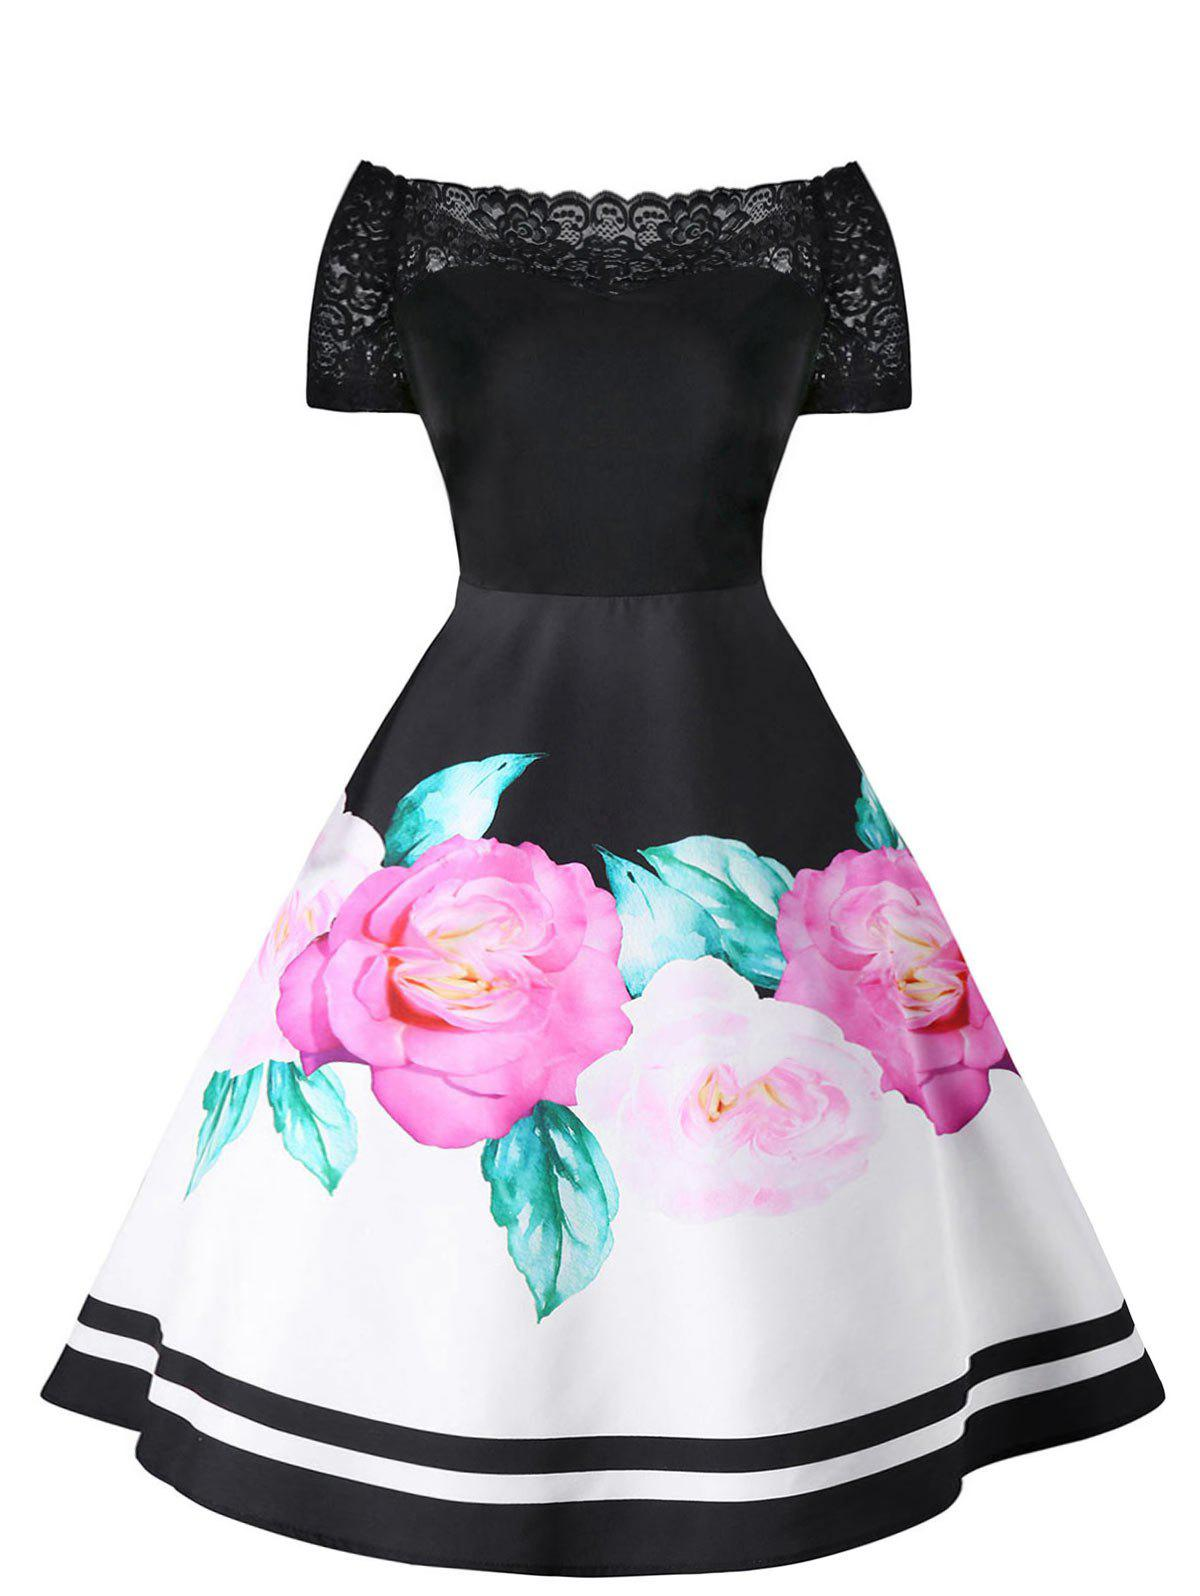 Shops Retro Lace Panel Floral Fit and Flare Dress